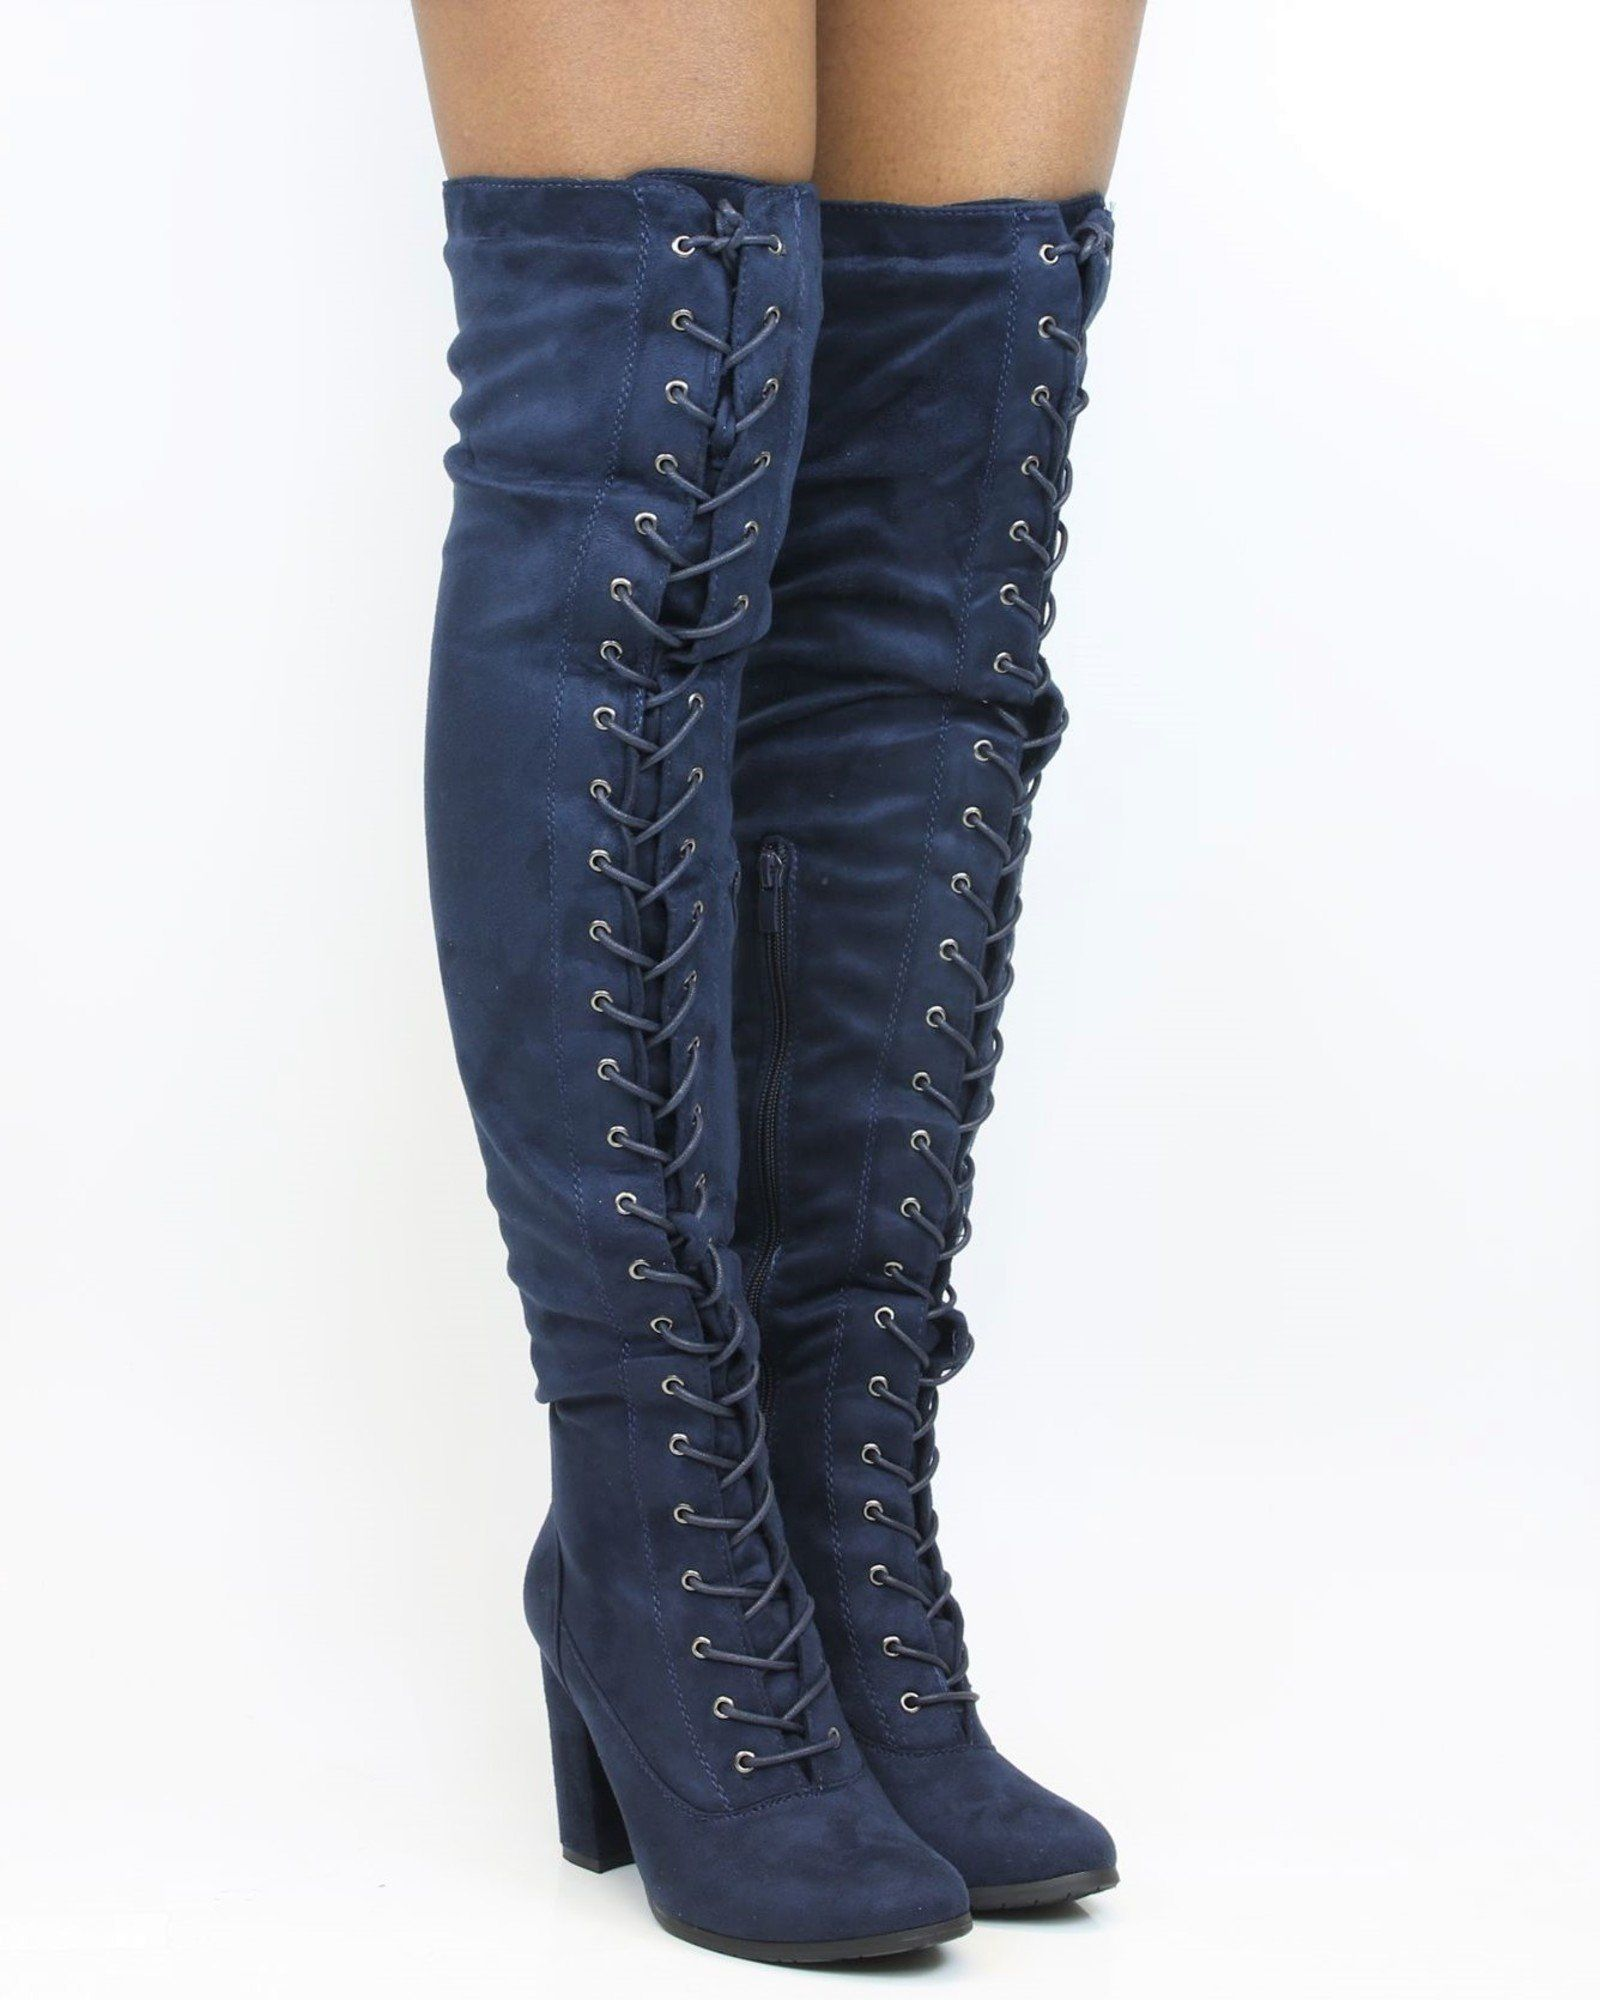 ca40a049804 Myra Lace Up Over The Knee Boot - Navy in 2019 | Products | Boots ...